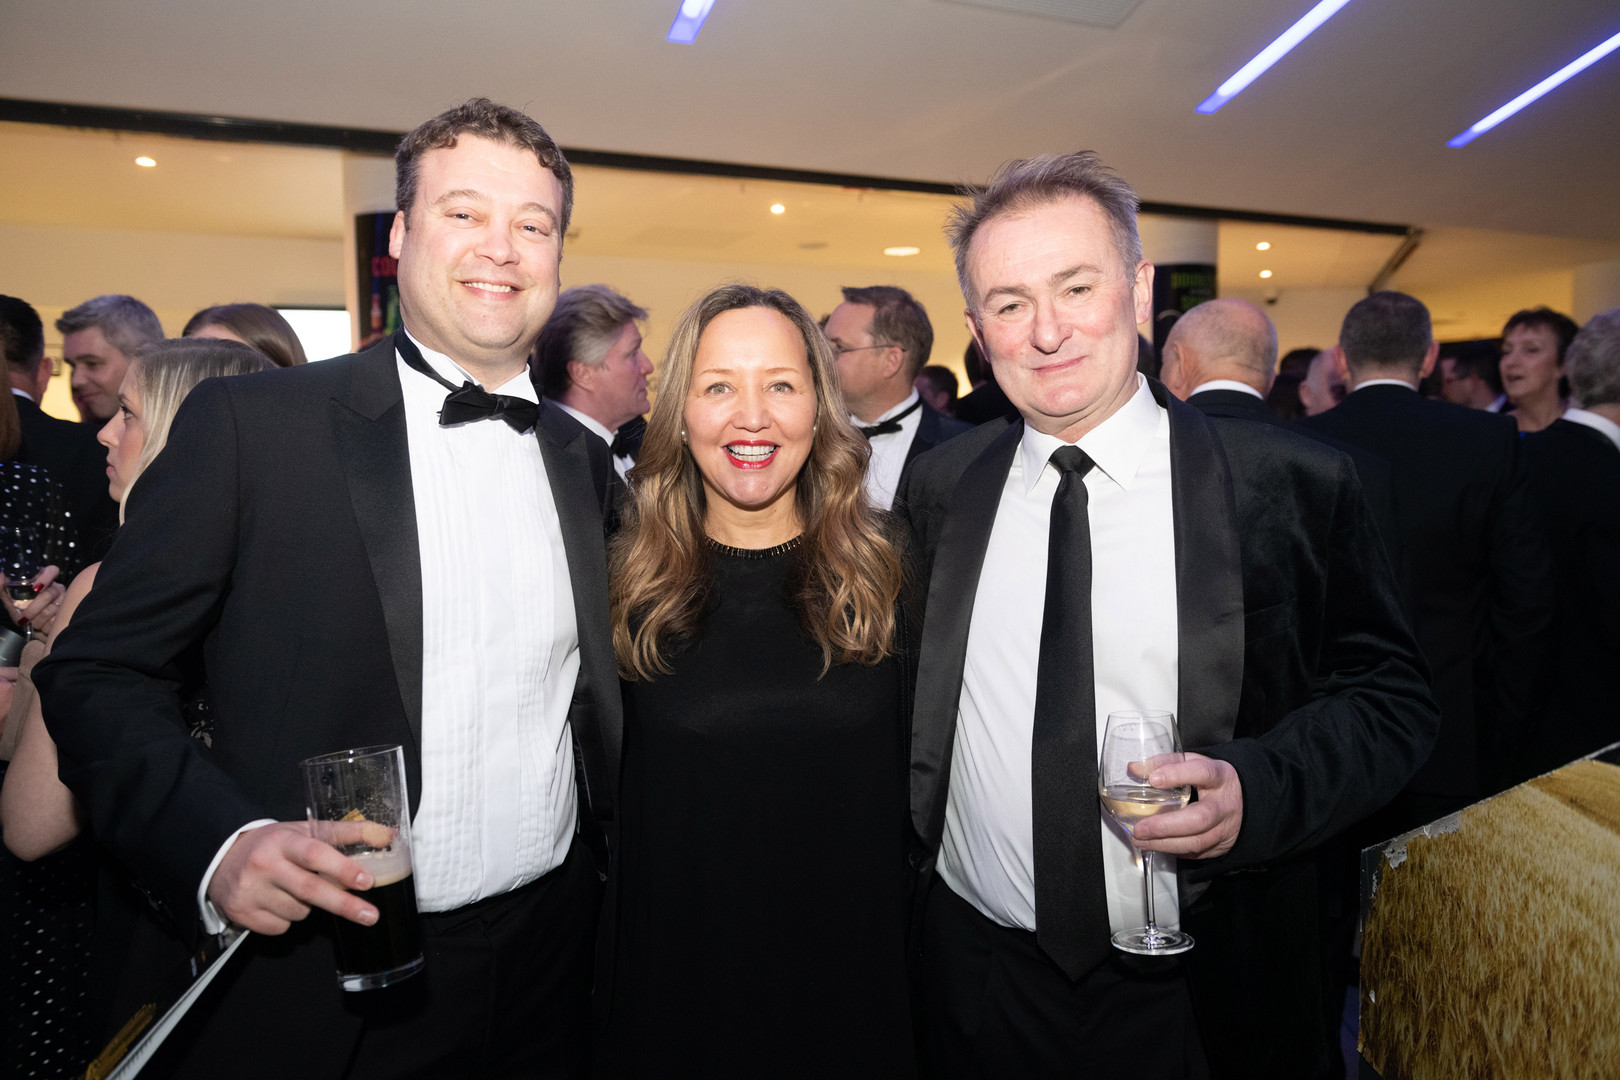 SurreyPropertyAwards_Nov2019_183.jpg